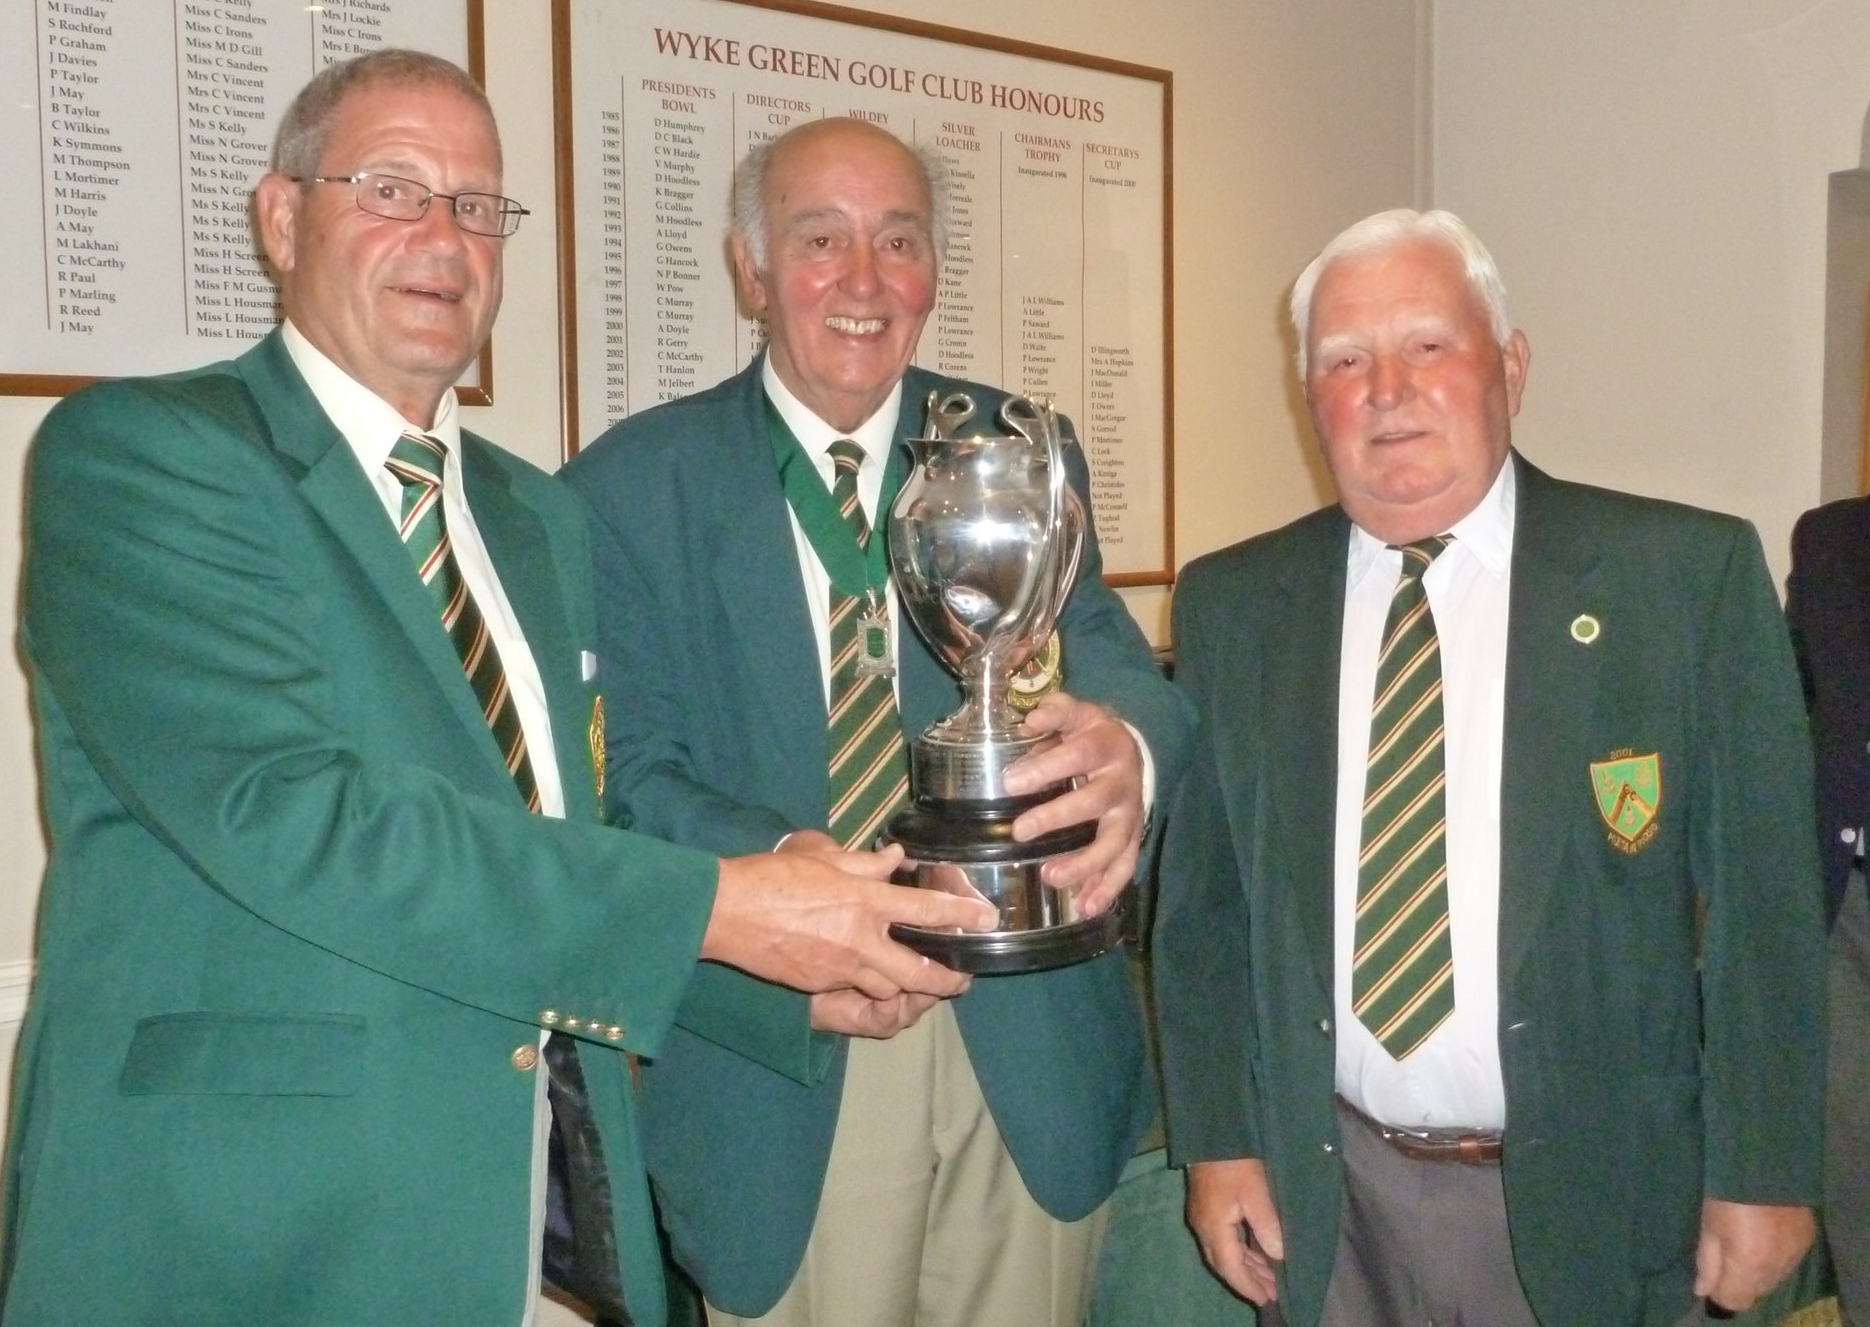 President Harry Judd presenting Peter Lowe, Datchet Golf Club and Jim Smith, Hillingdon Golf Club. winners of the Henderson Trophy for the best back nine holes.